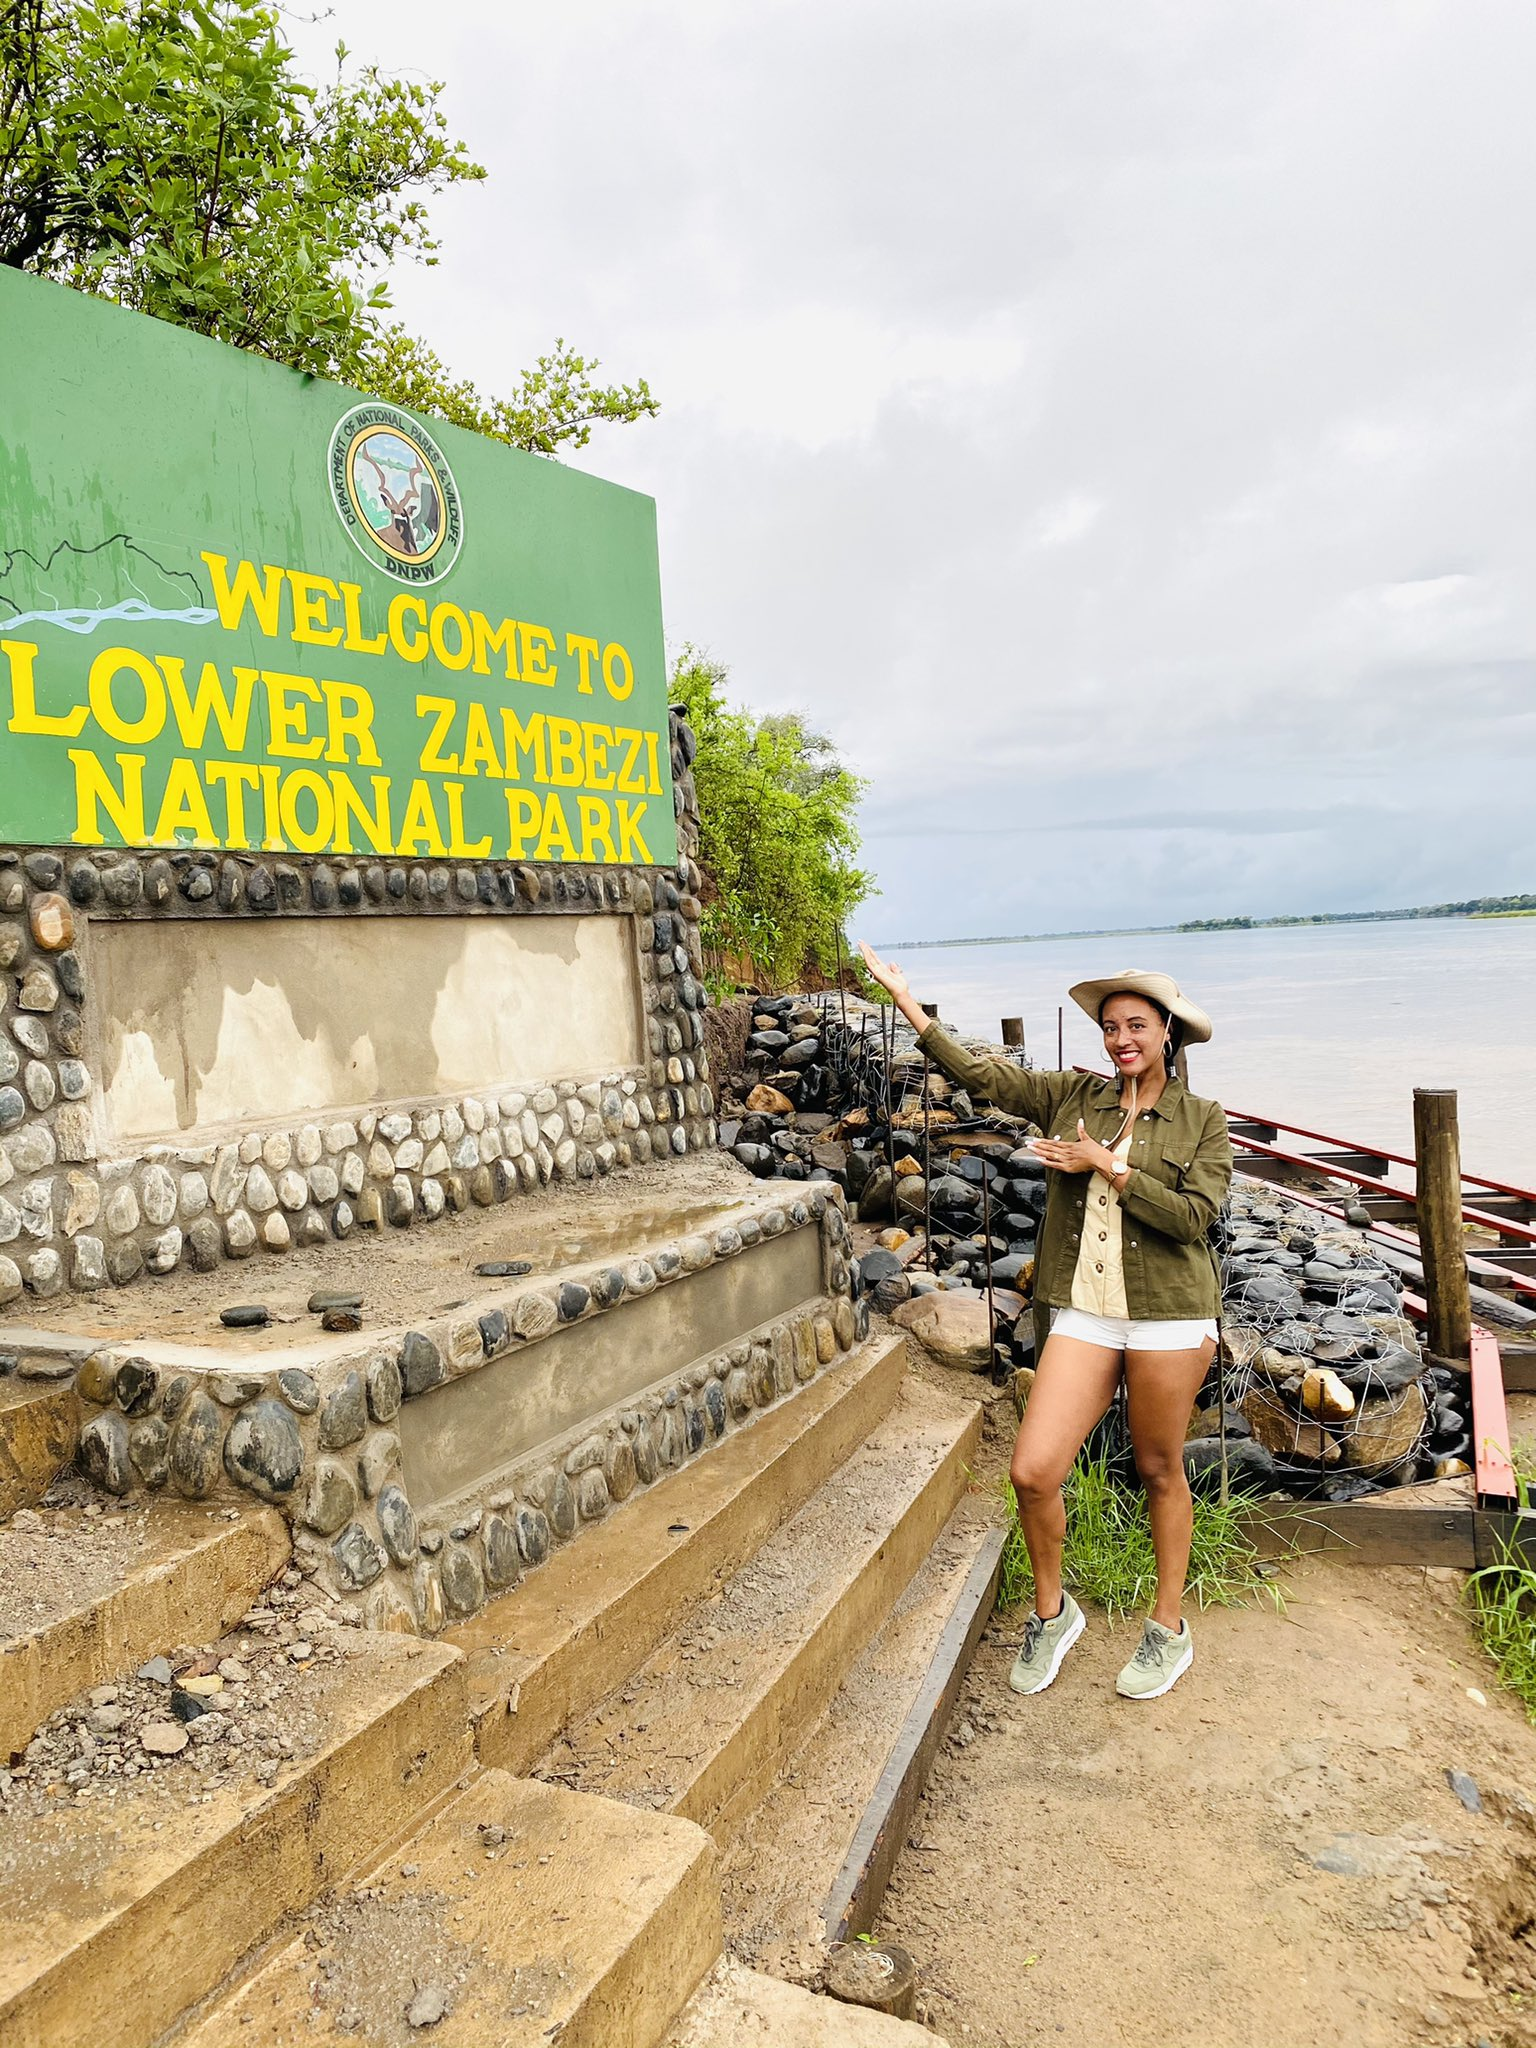 Lower Zambezi Sign